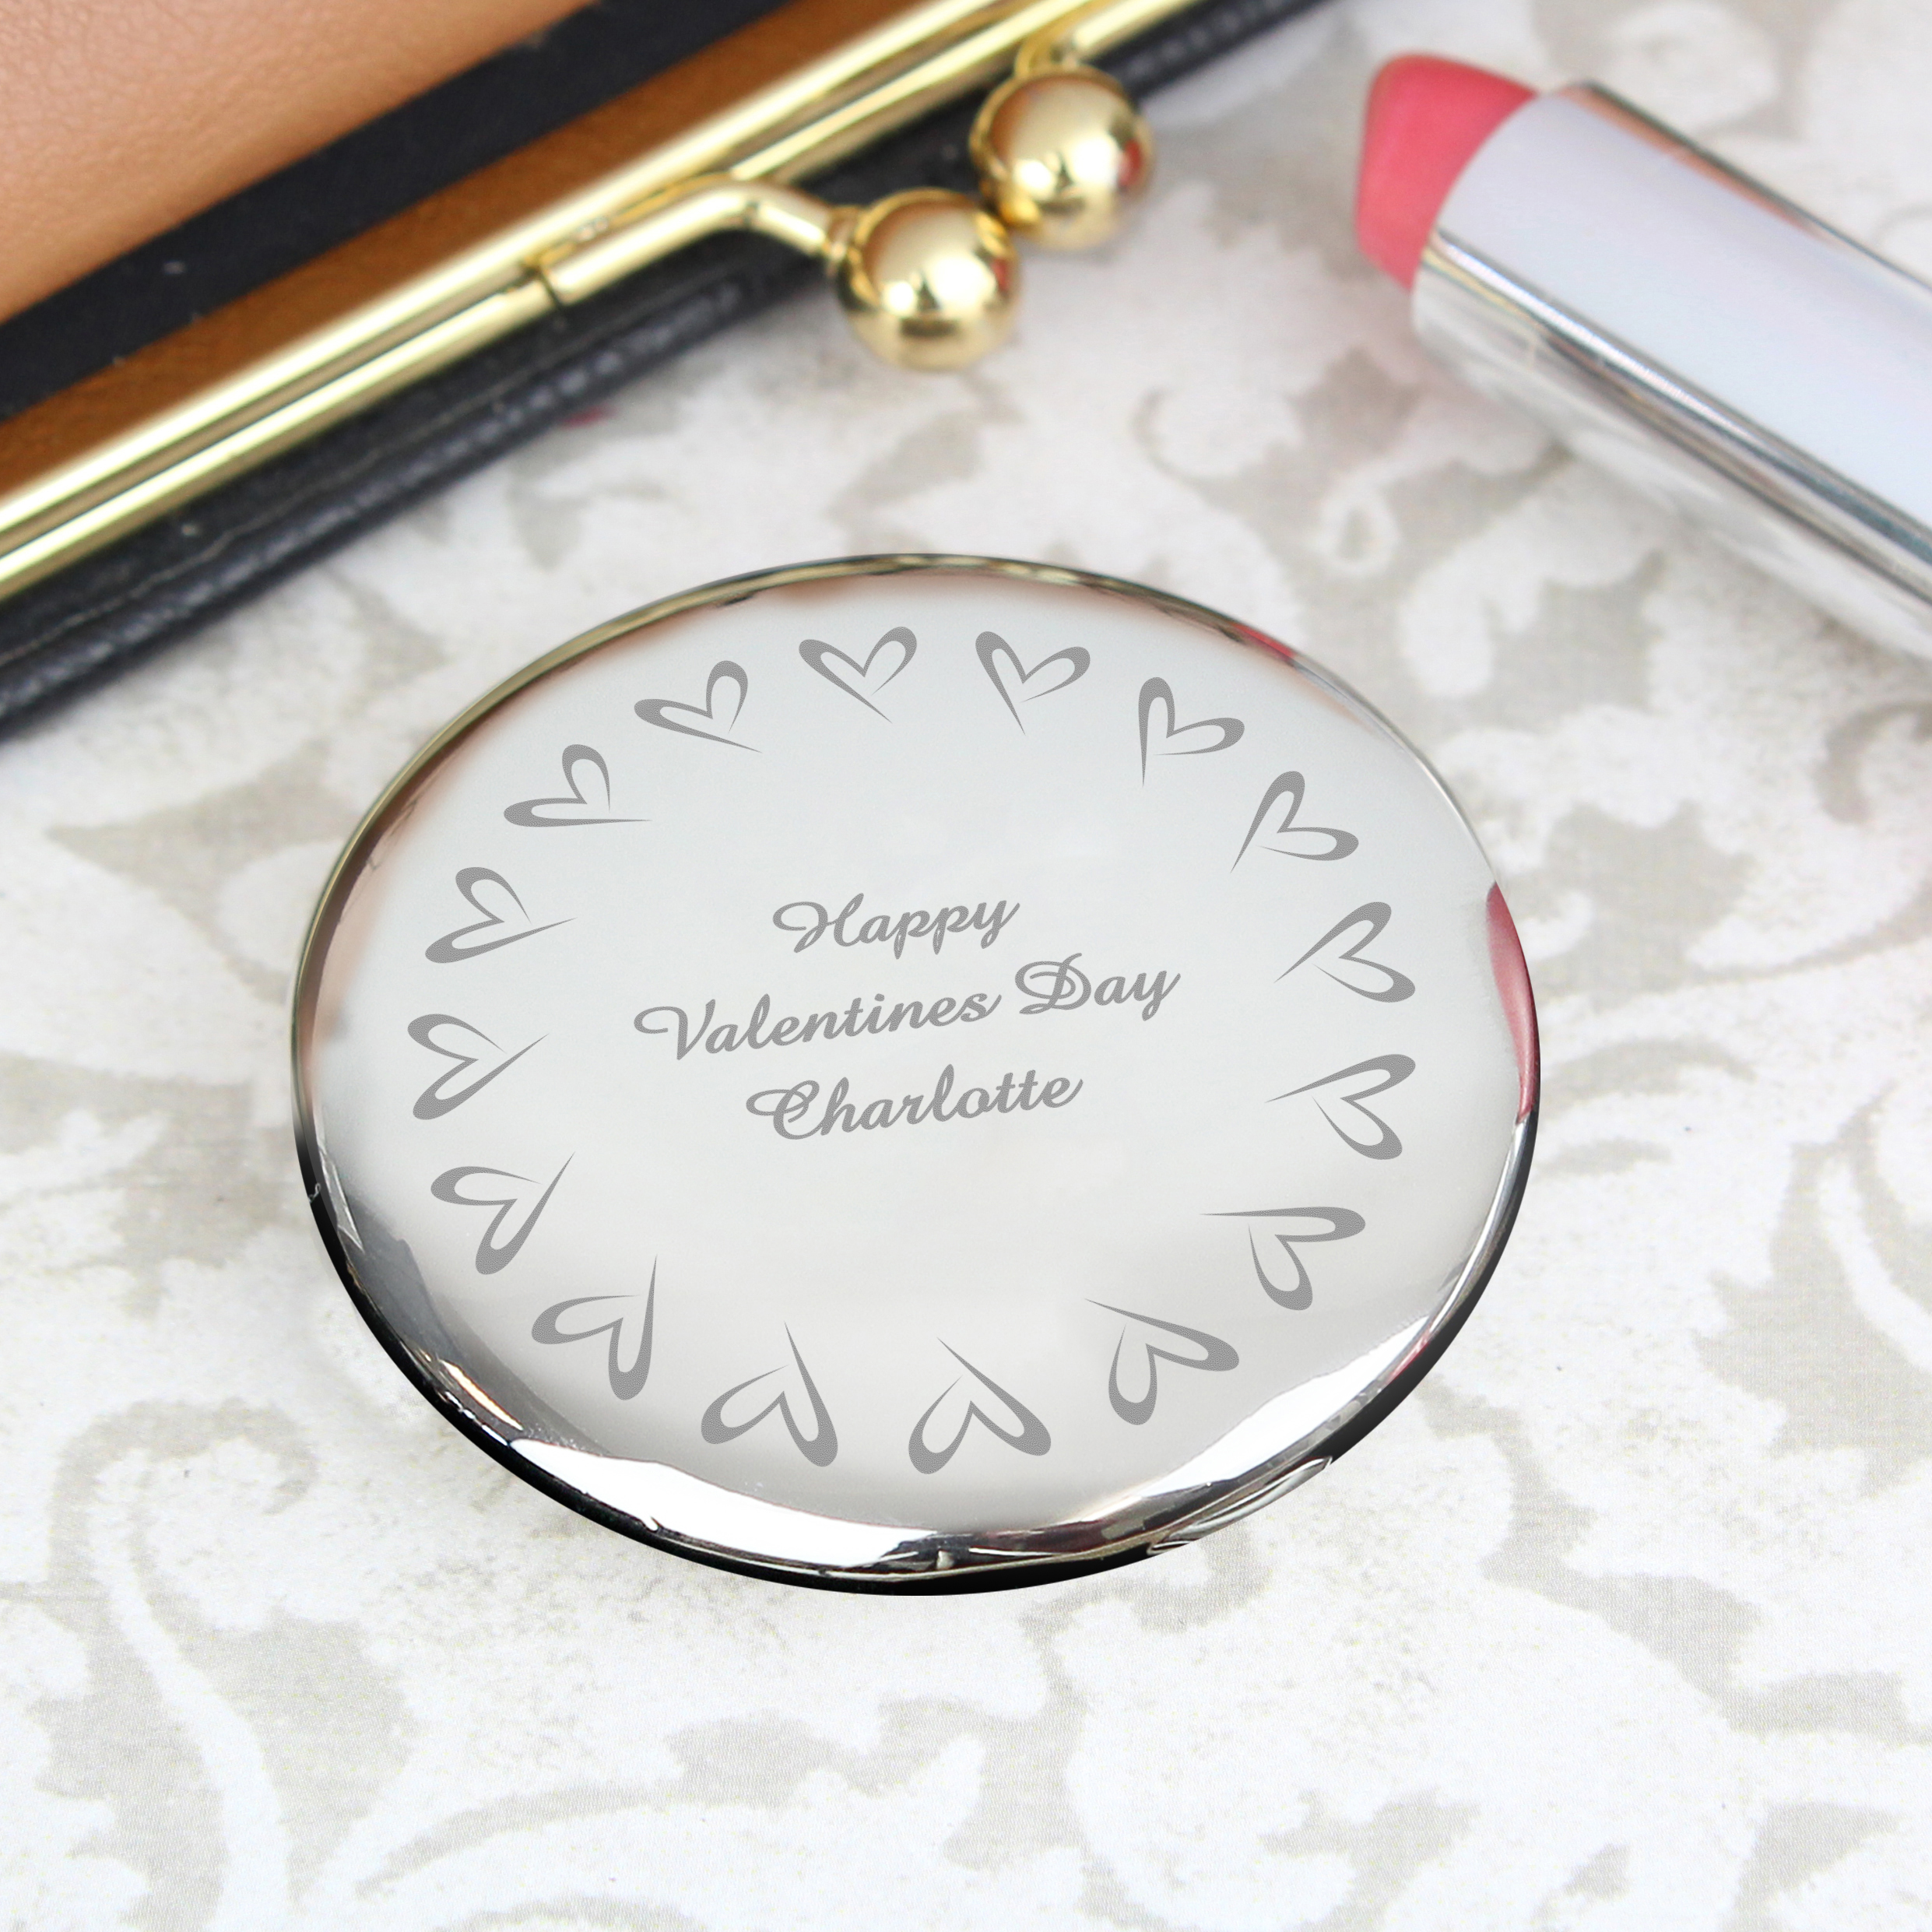 Engraved Round Compact Mirror - Small Hearts